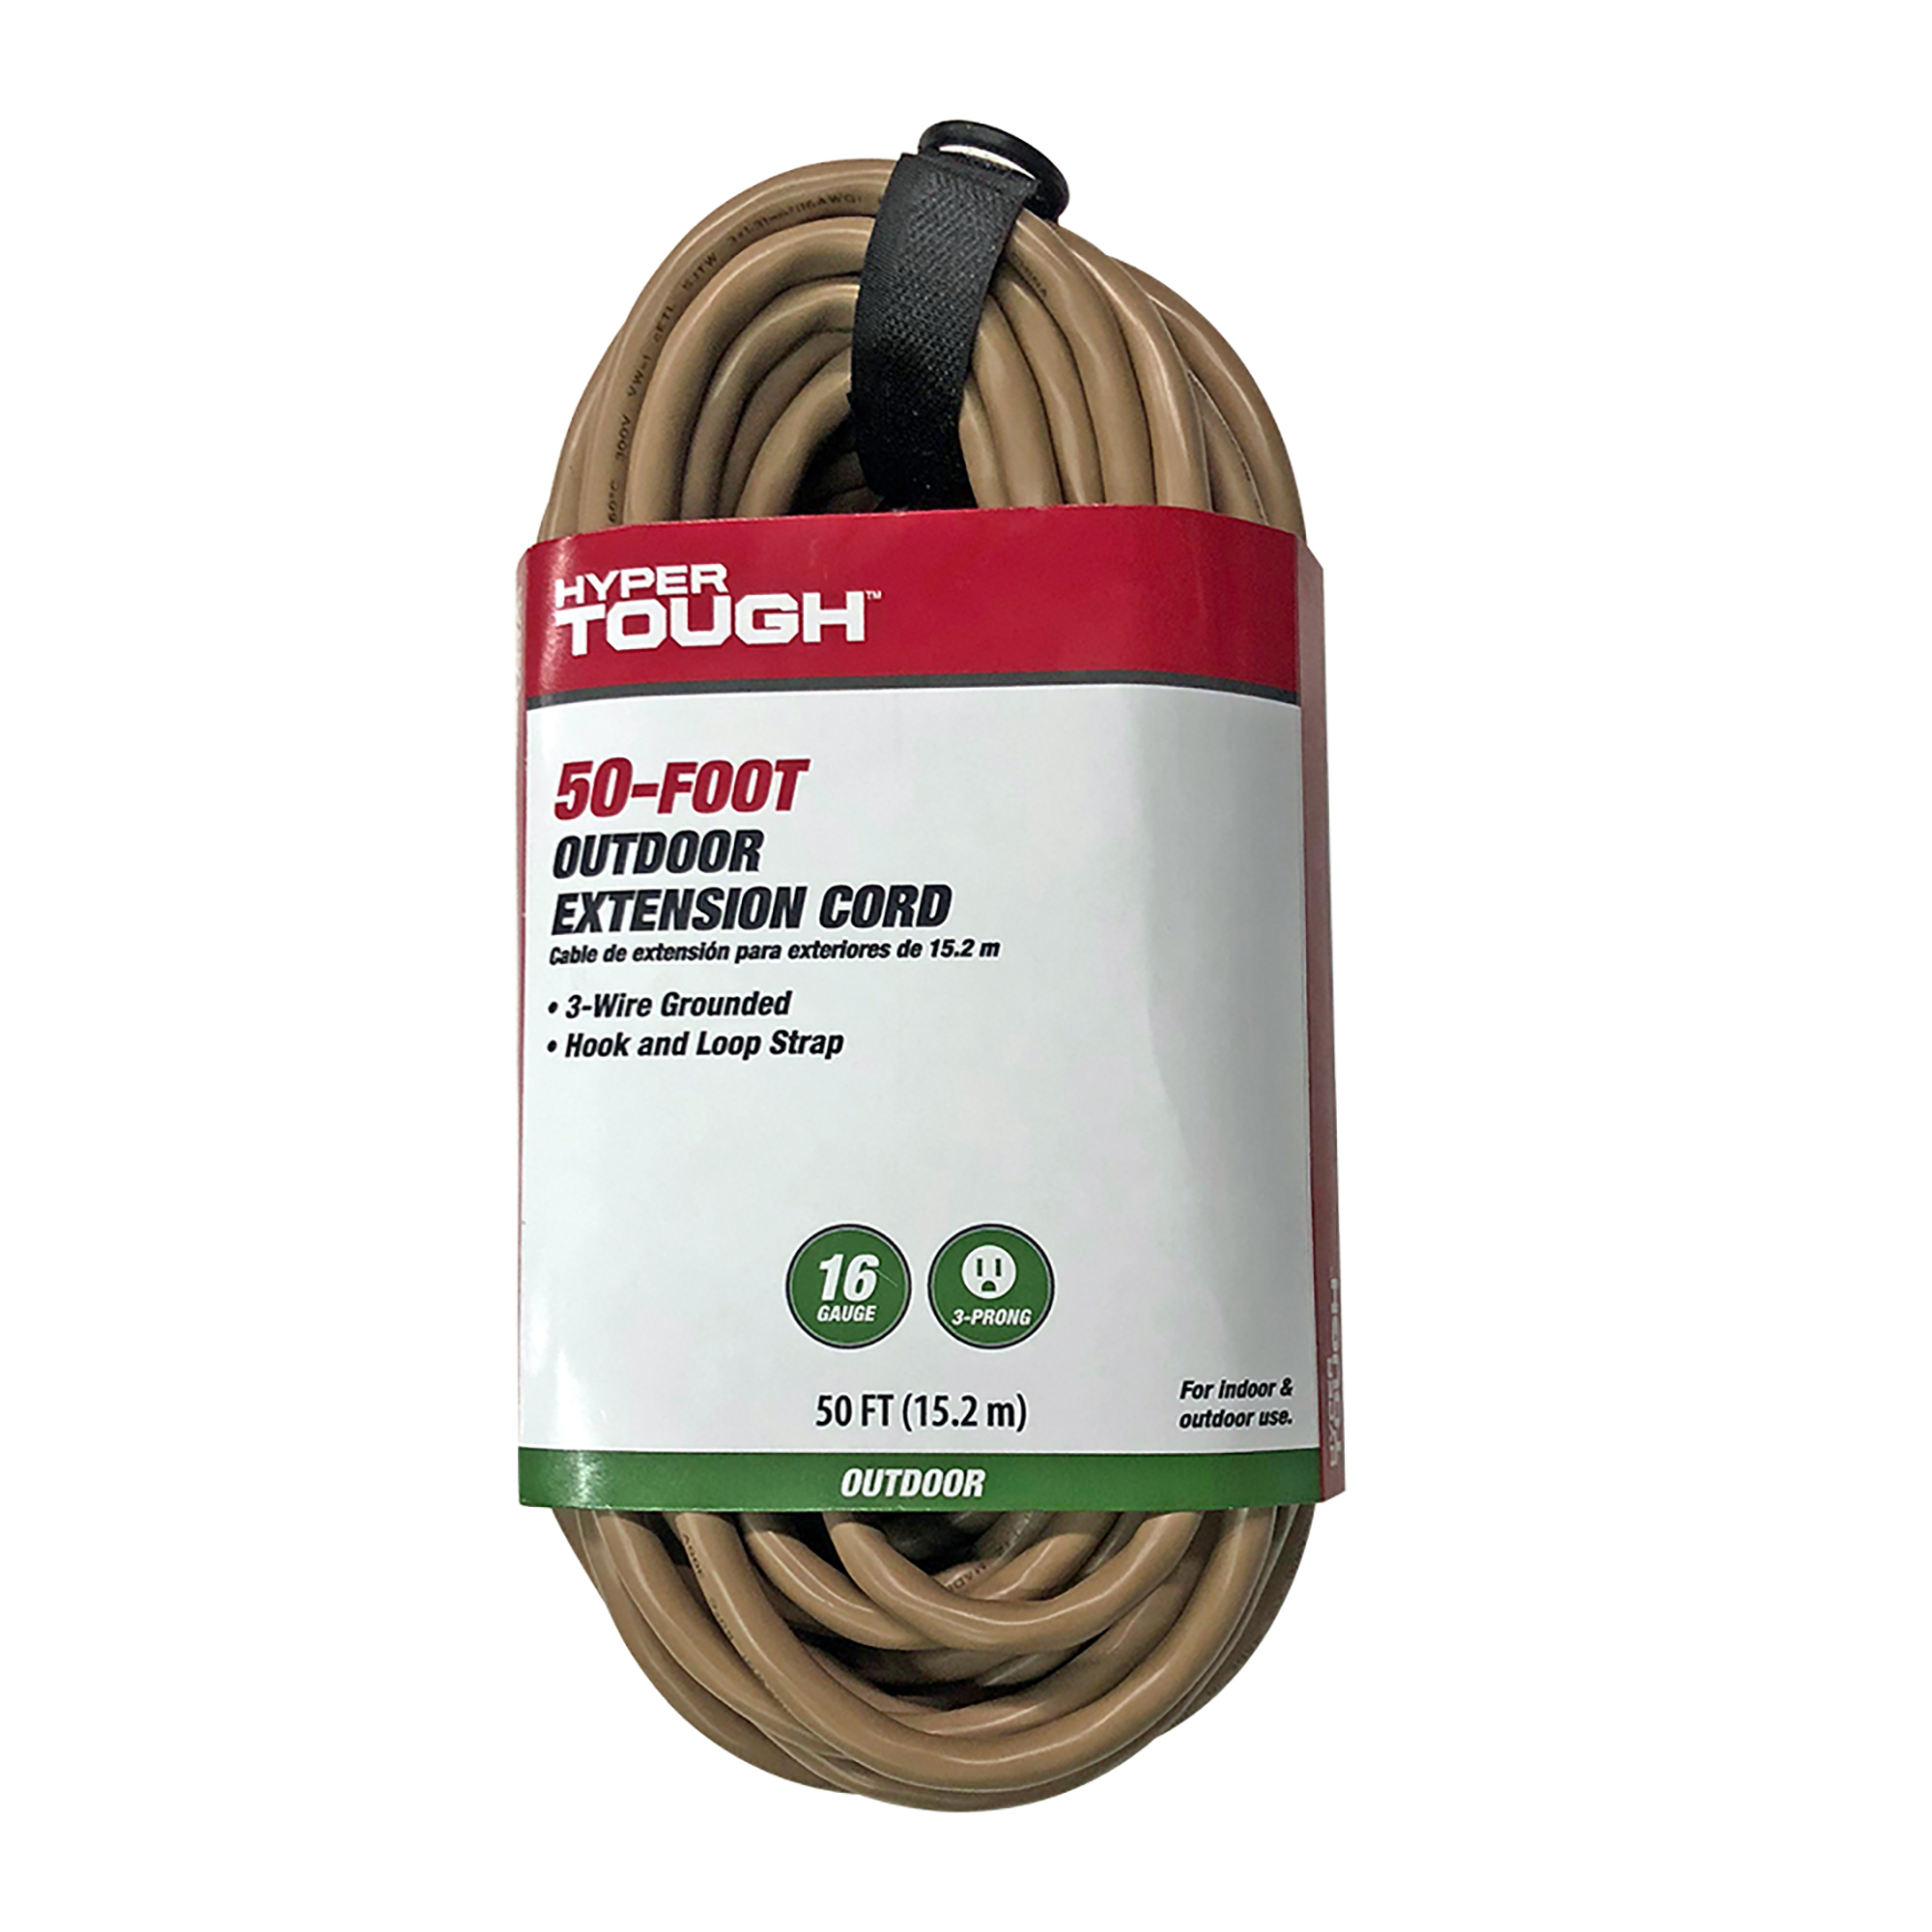 Hyper Tough 50ft SJTW 16/3 Tan Single Outlet Cord